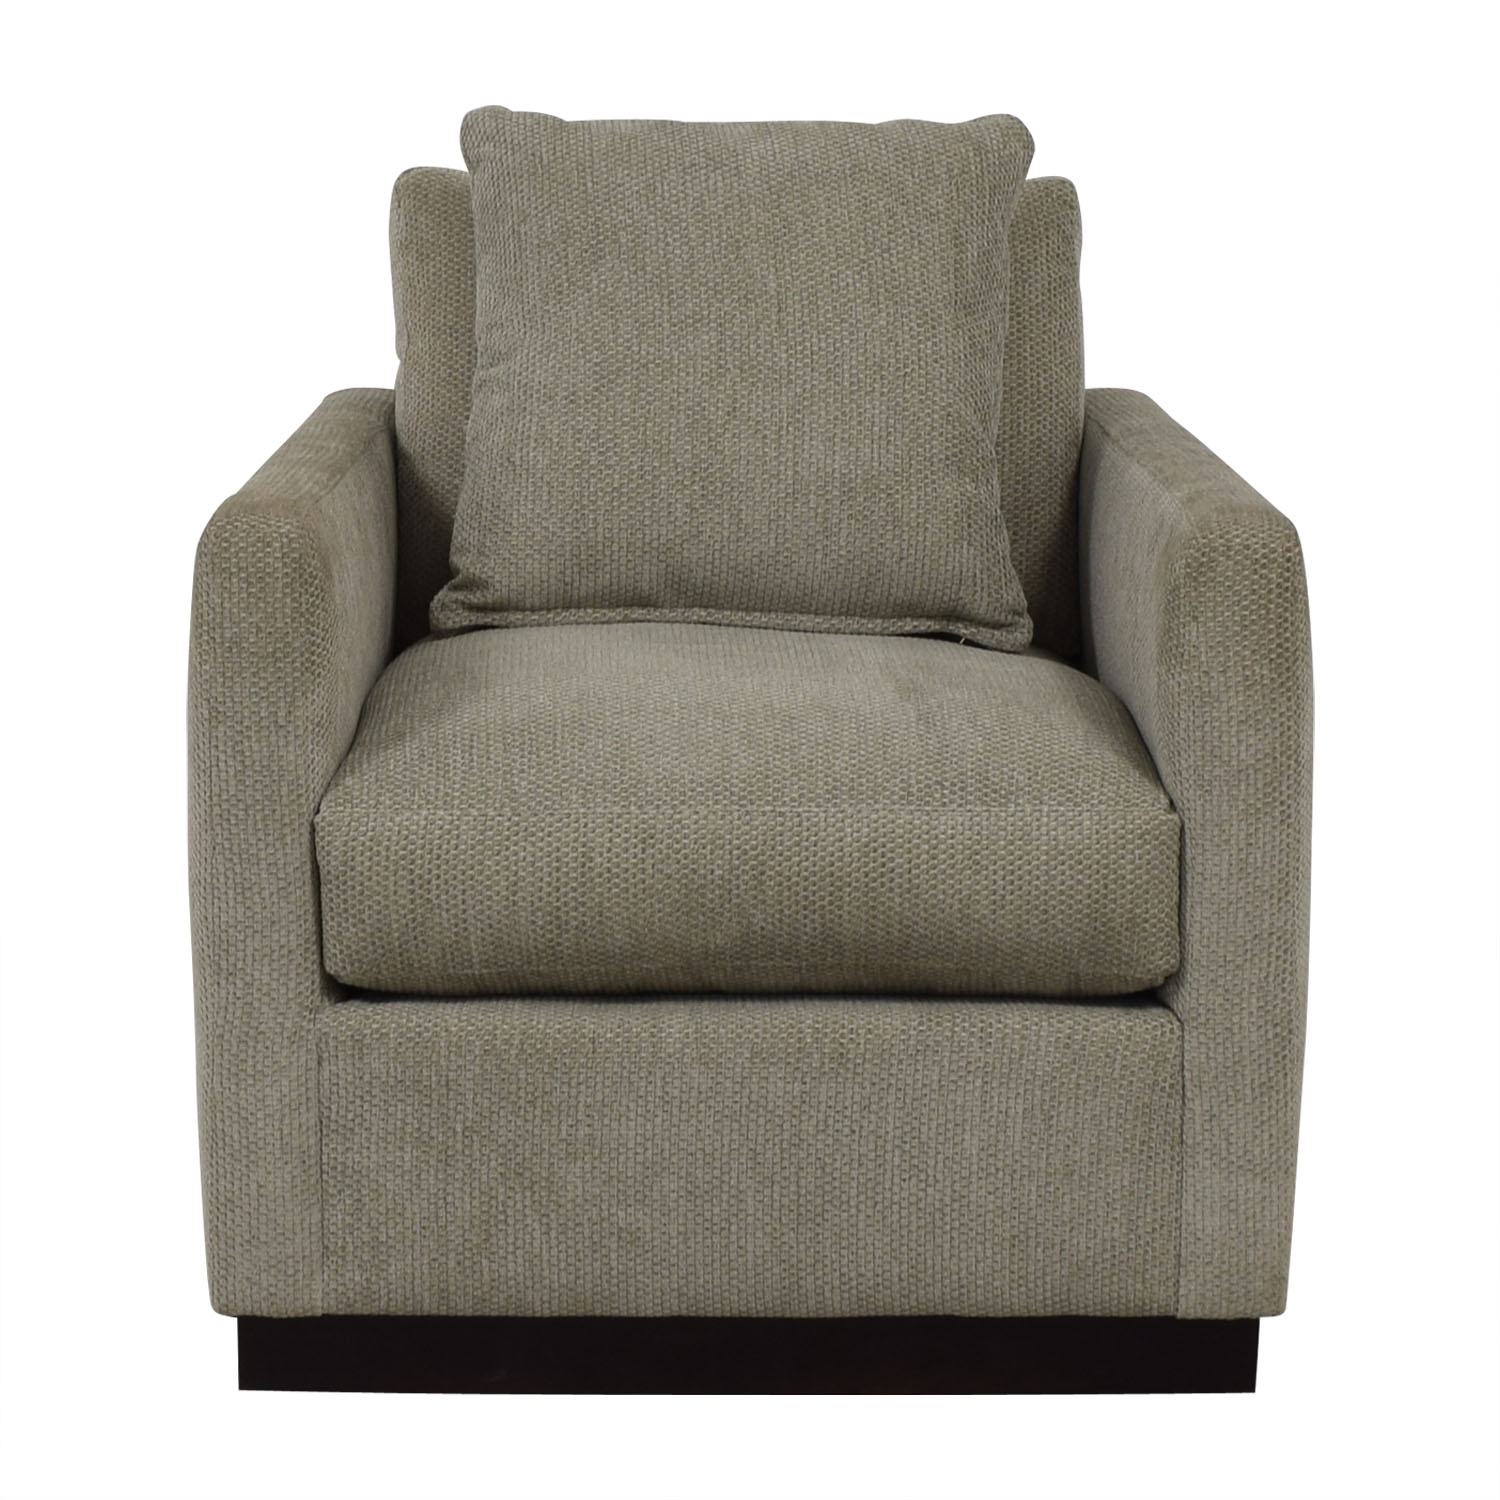 buy Robin Bruce Allie Swivel Accent Chair Robin Bruce Accent Chairs